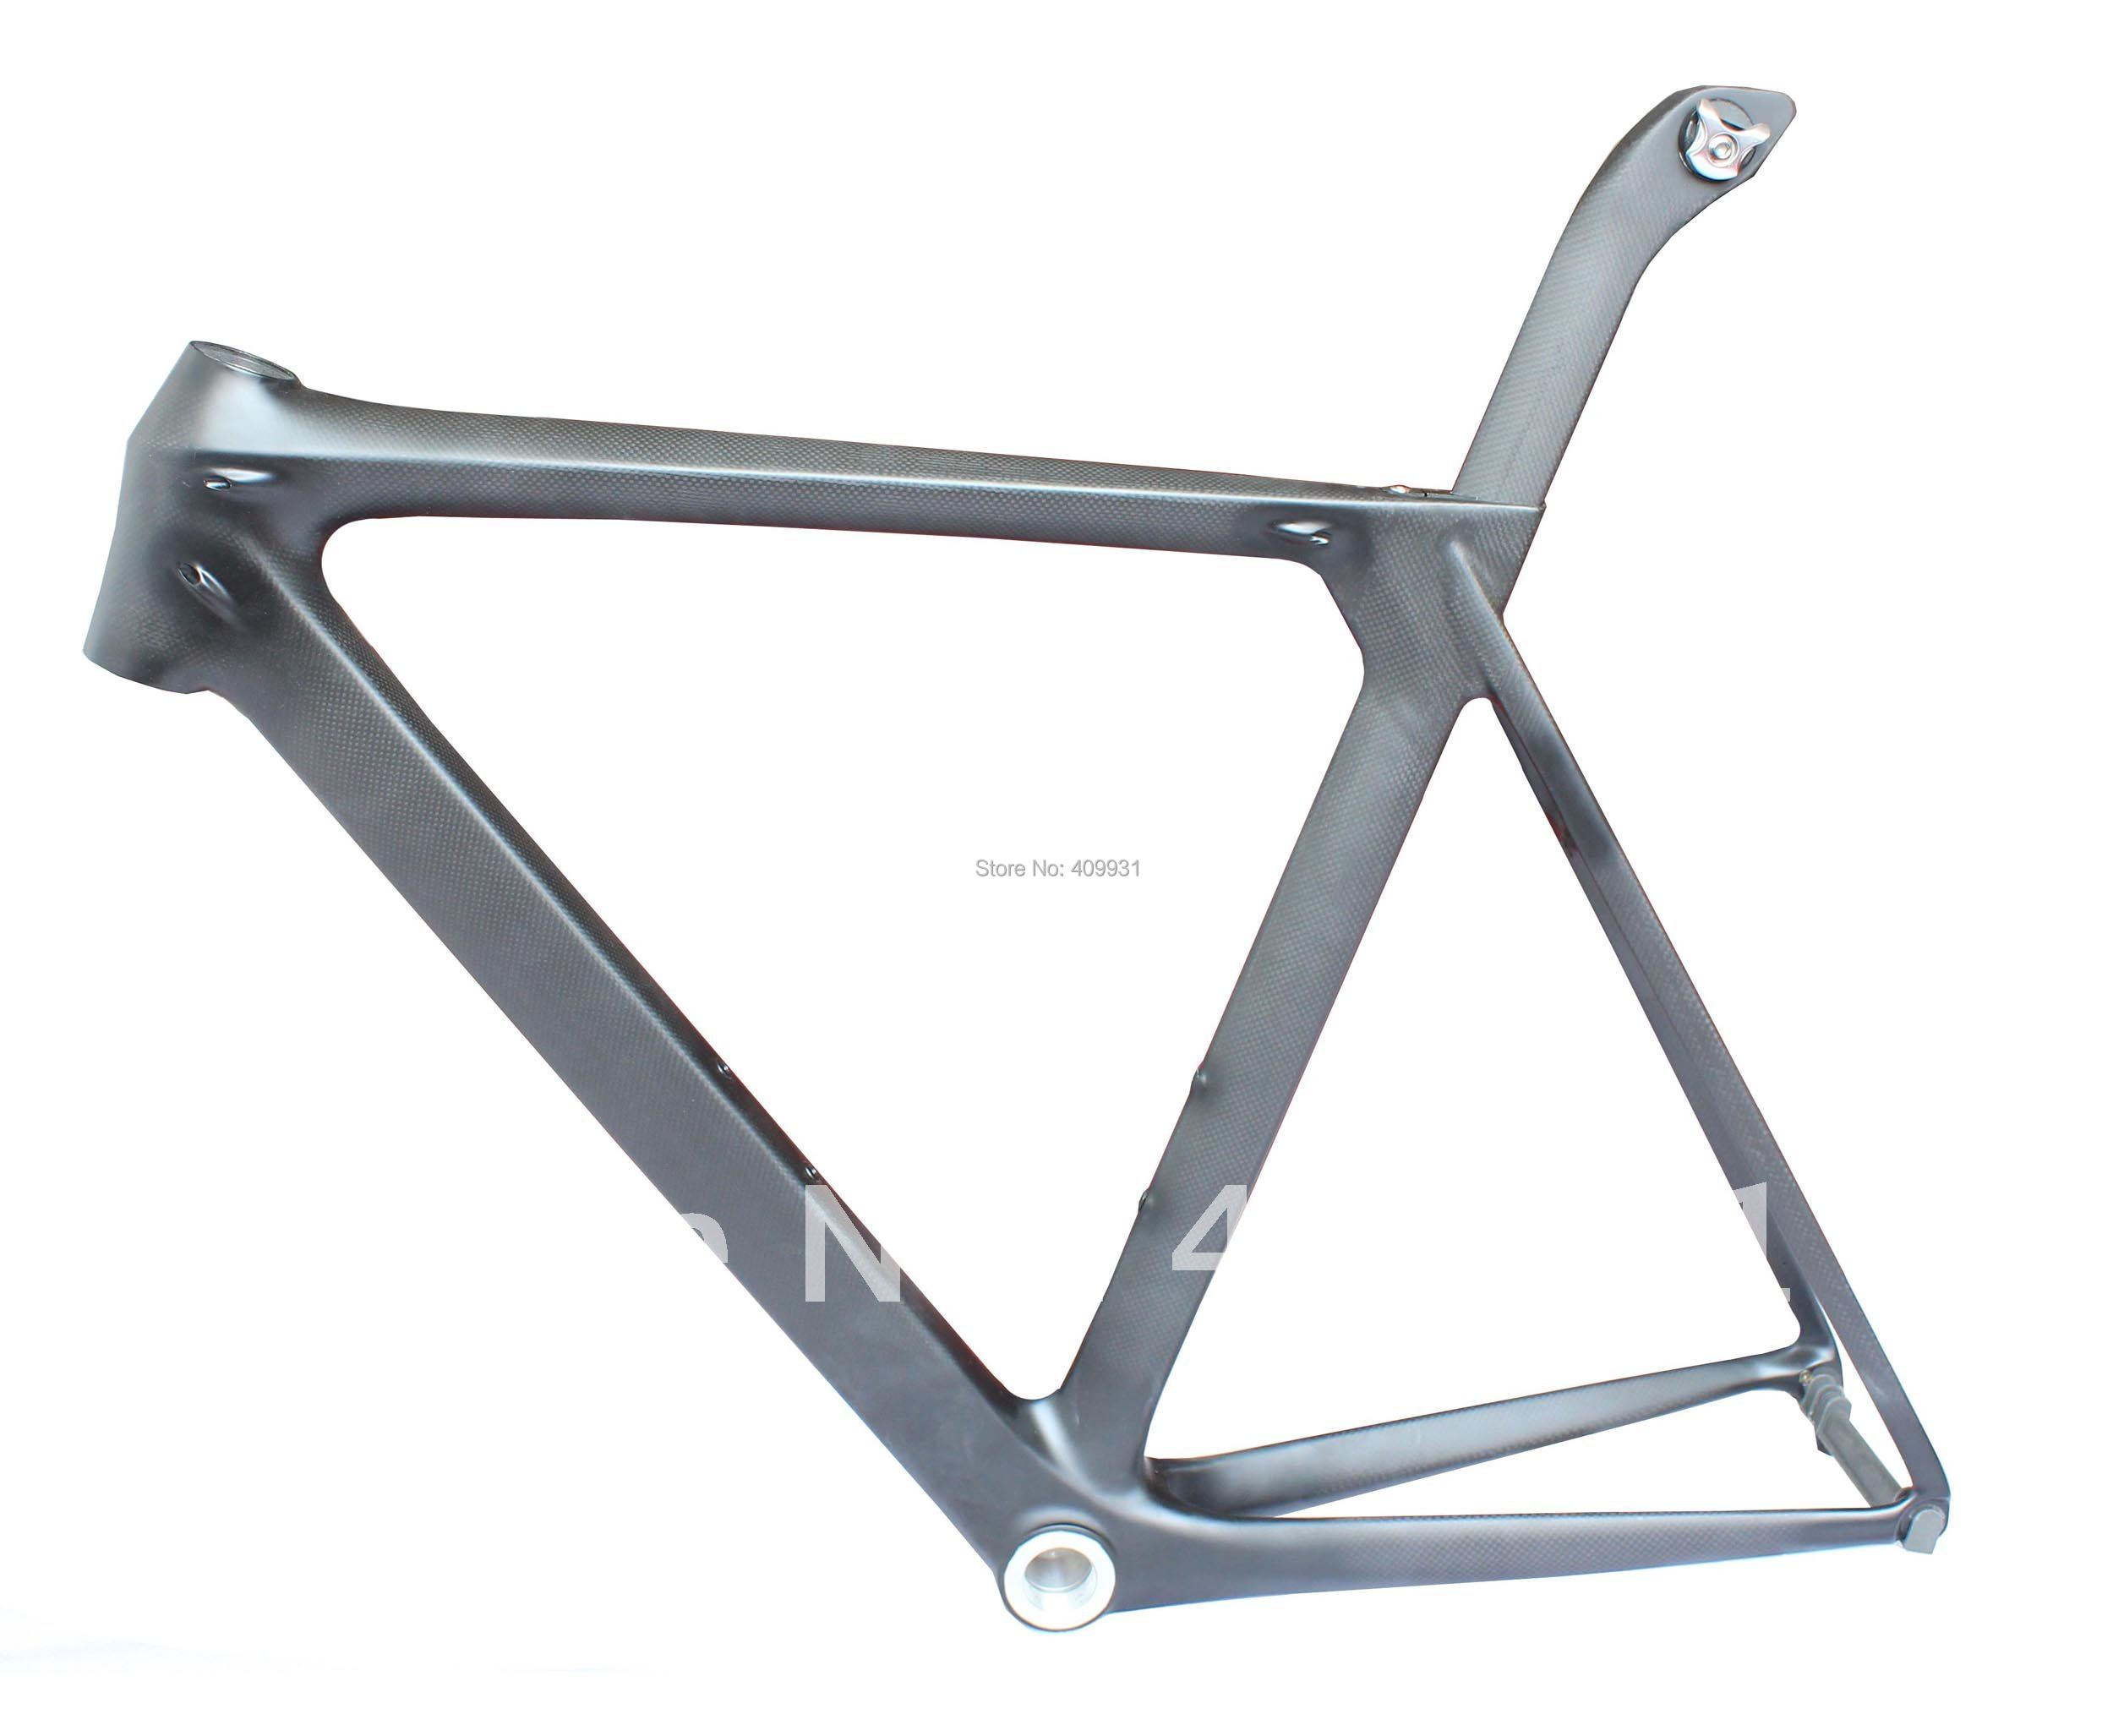 High quality Carbon road Bicycle Frame 54cm 3K Weave Matt Finish BSA Bottom Bracket + Front Fork + Seatpost 2012 Newest Design(China (Mainland))